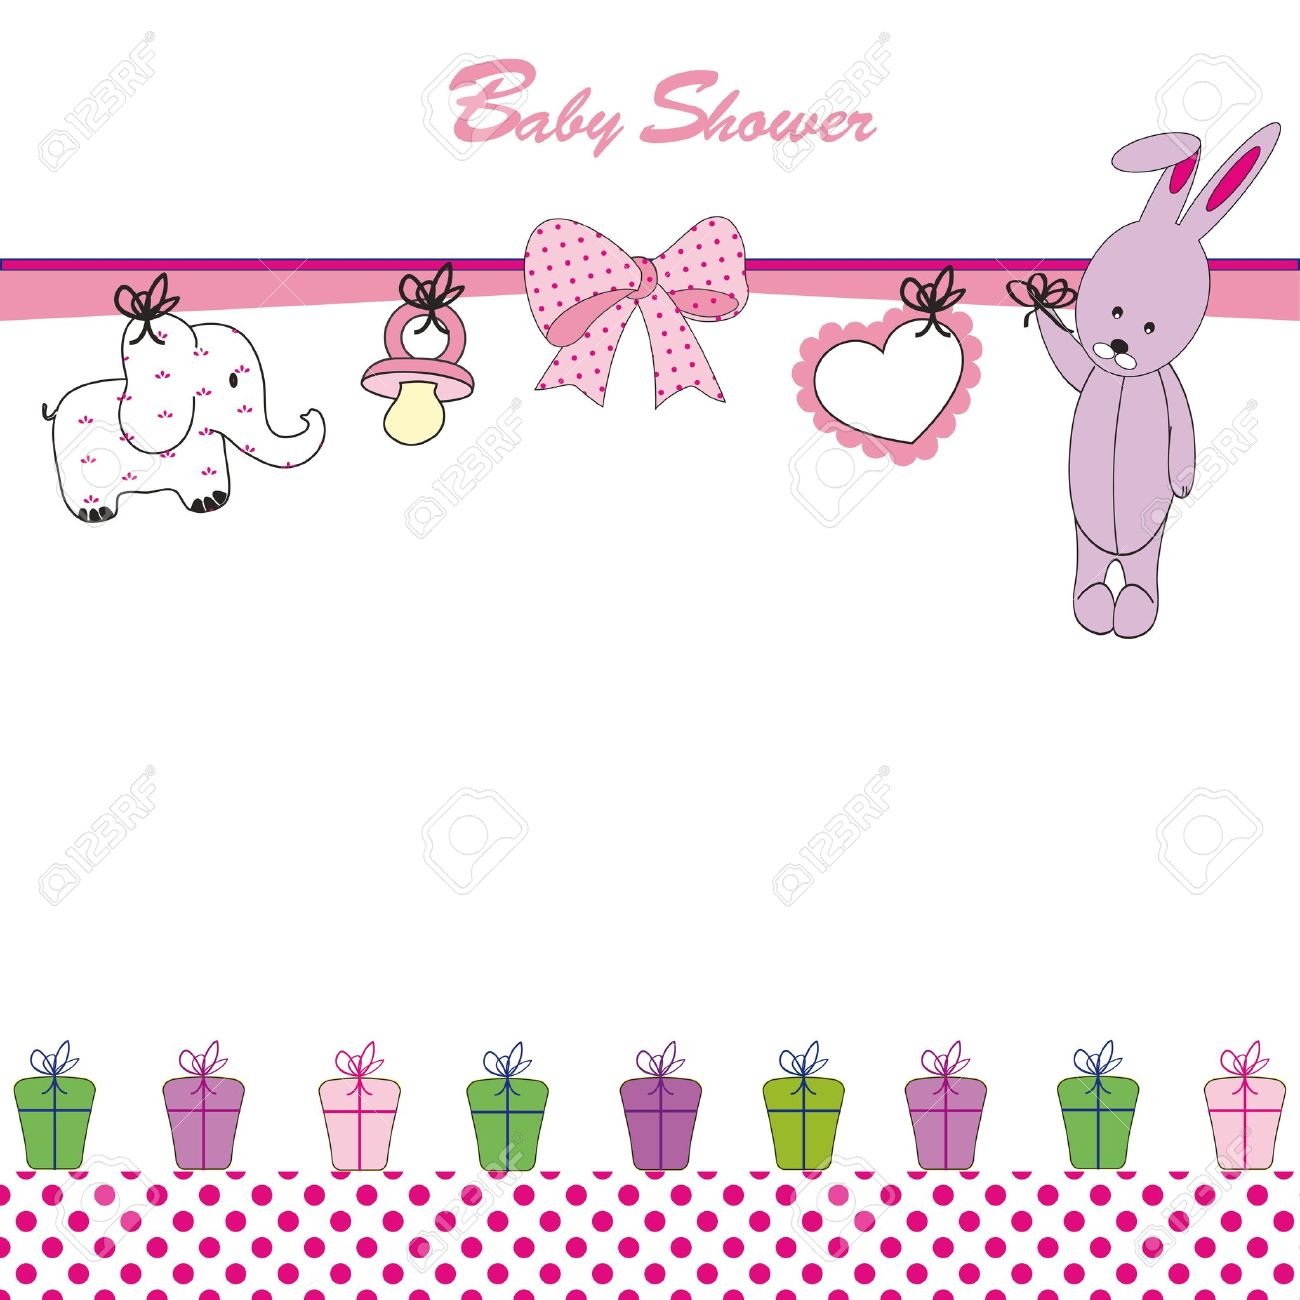 Baby Shower Background Hd Images Baby Viewer